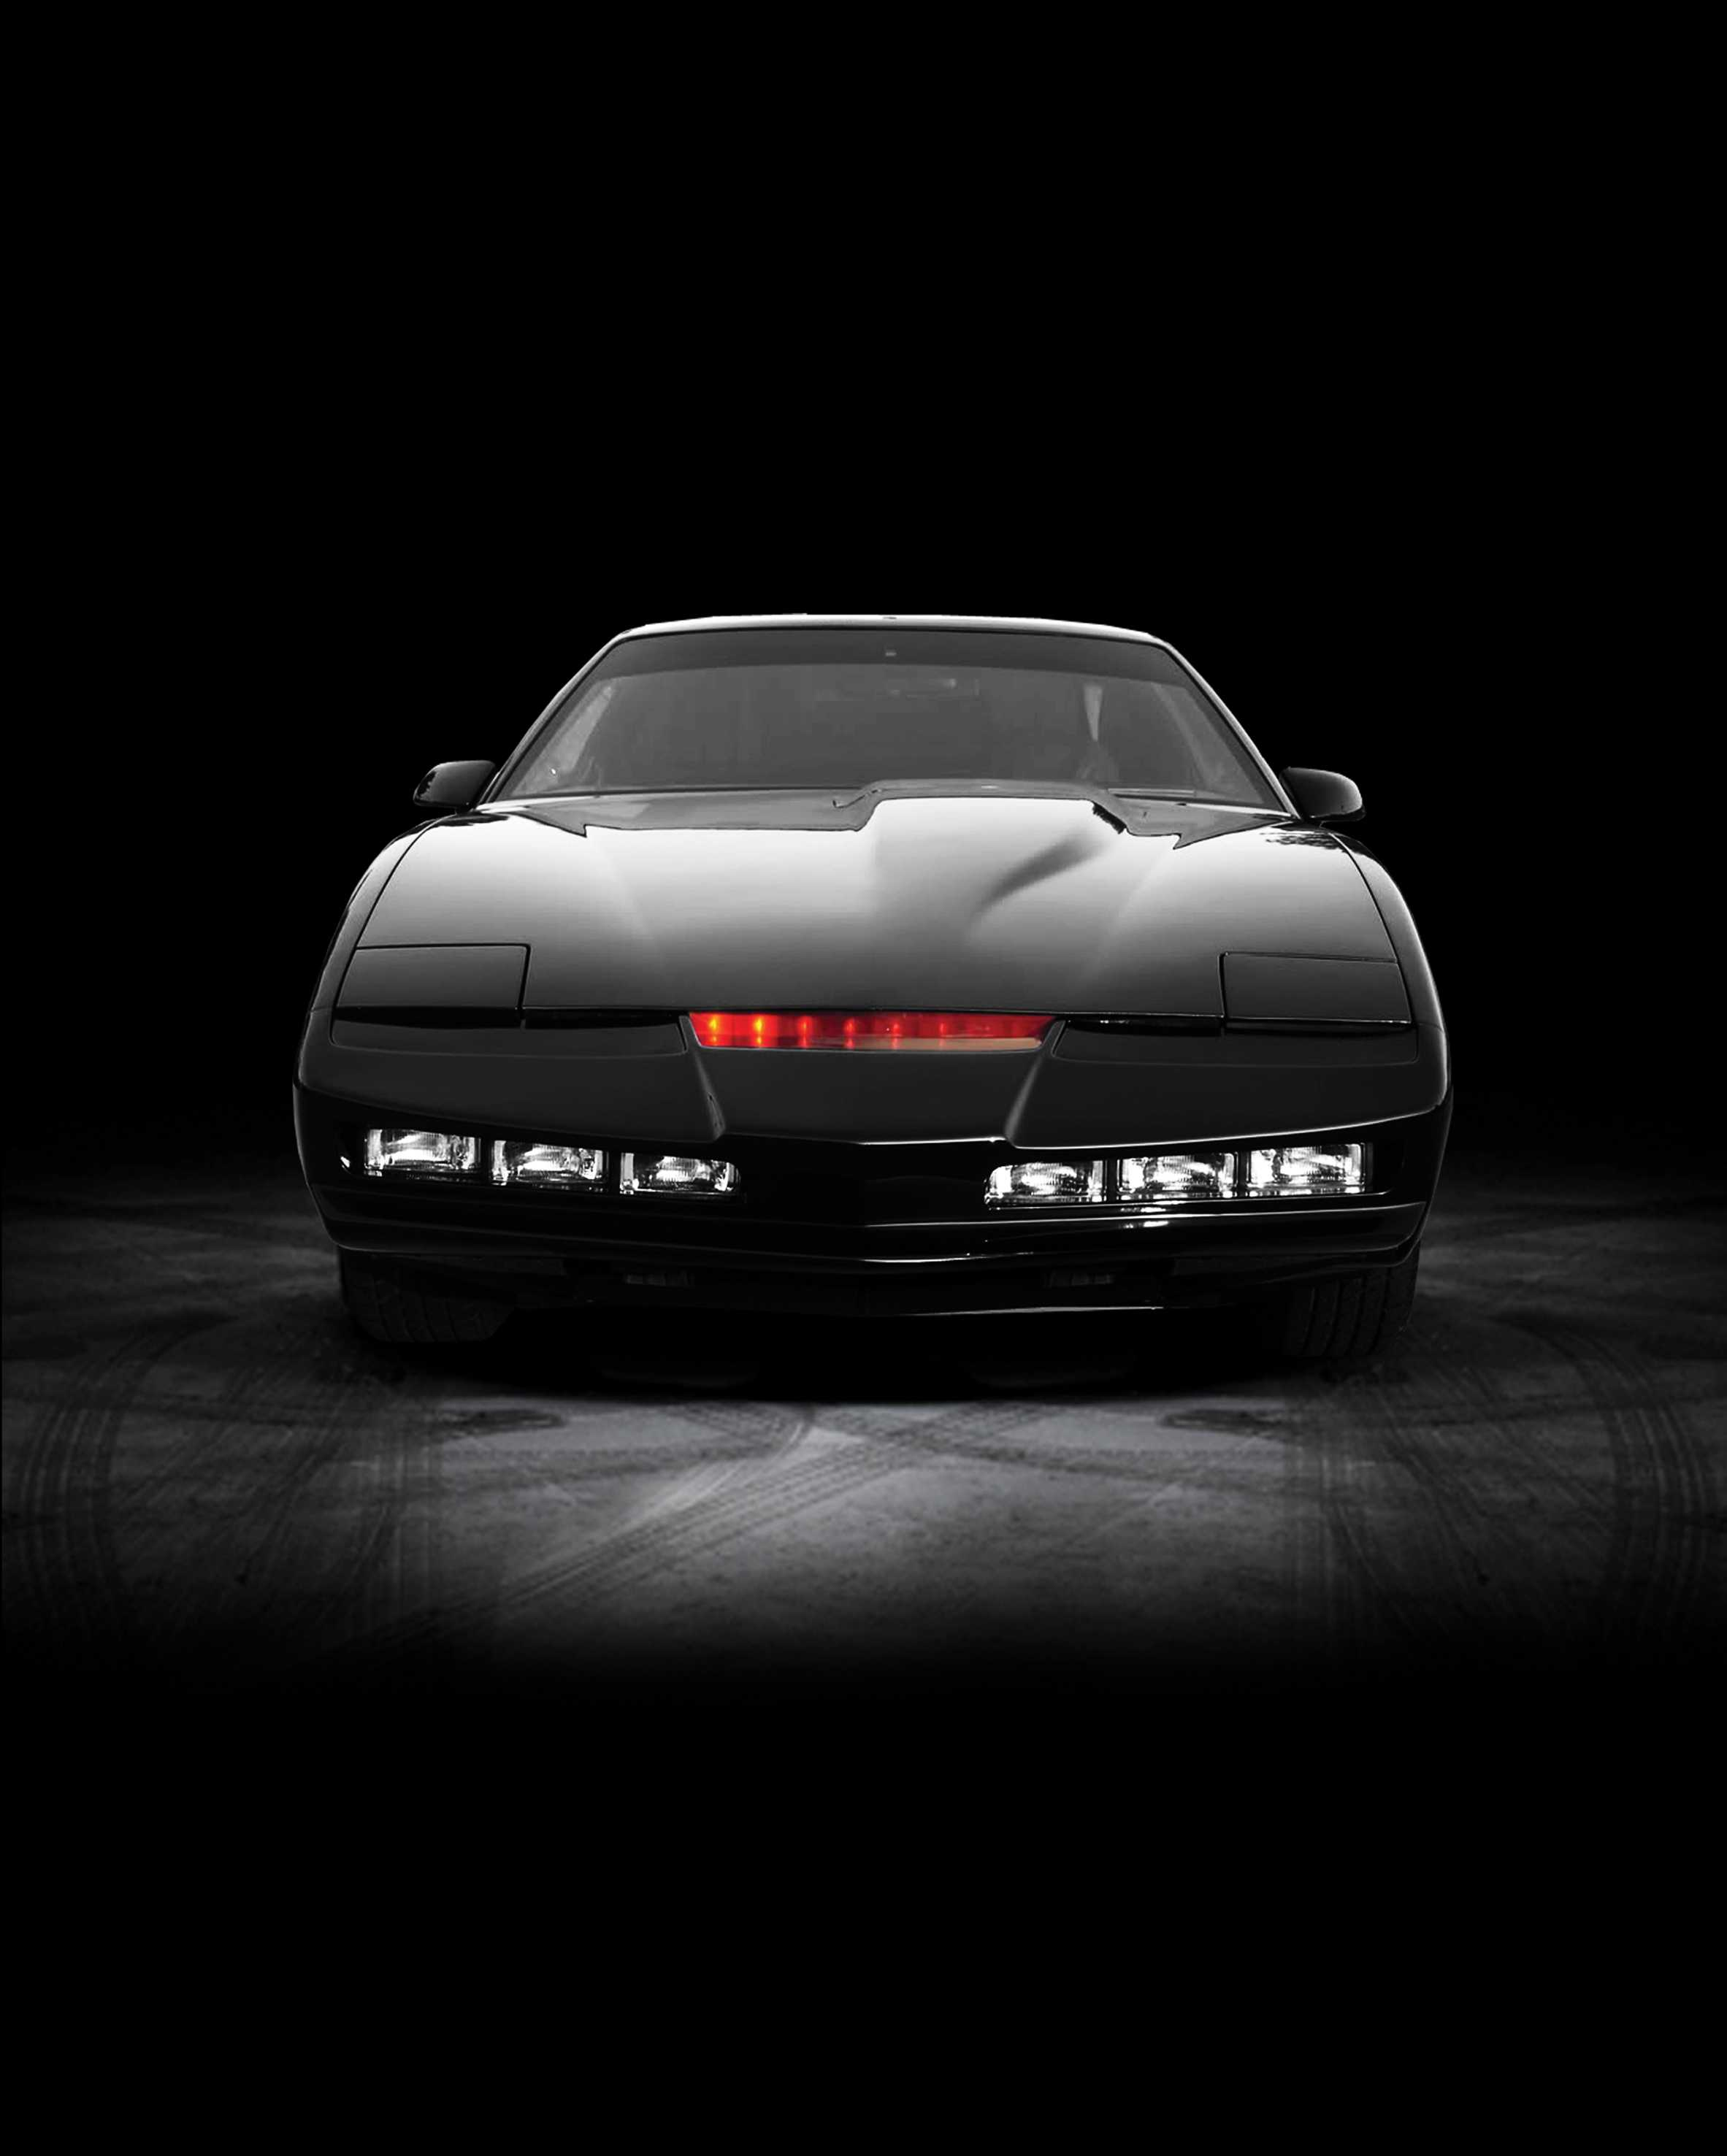 Car In Space Wallpaper Elon Musk Place Your Bid Now On This Knight Rider Kitt Trans Am